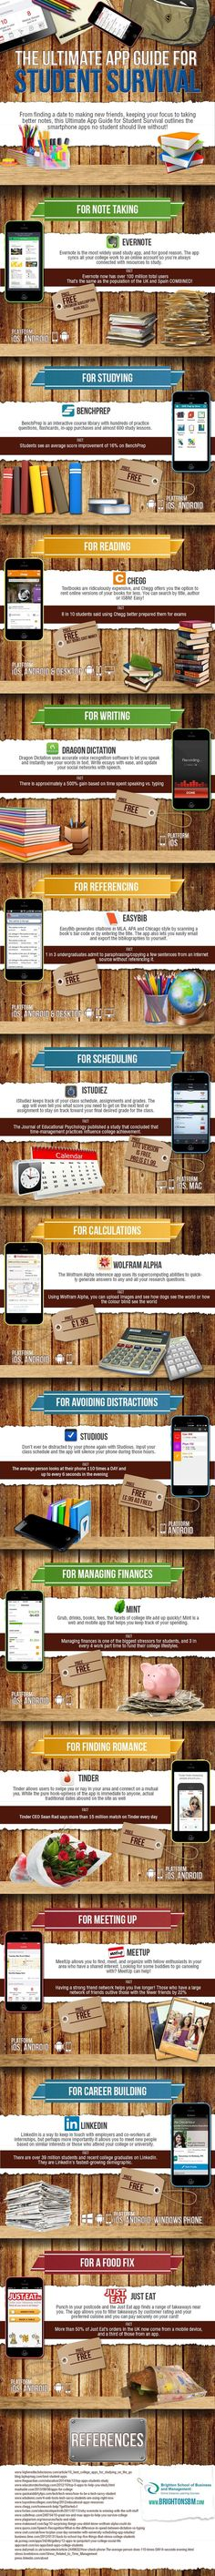 Infographic-App-Guide-for-Student-SurvivalCollege Tips #College #student best college tips